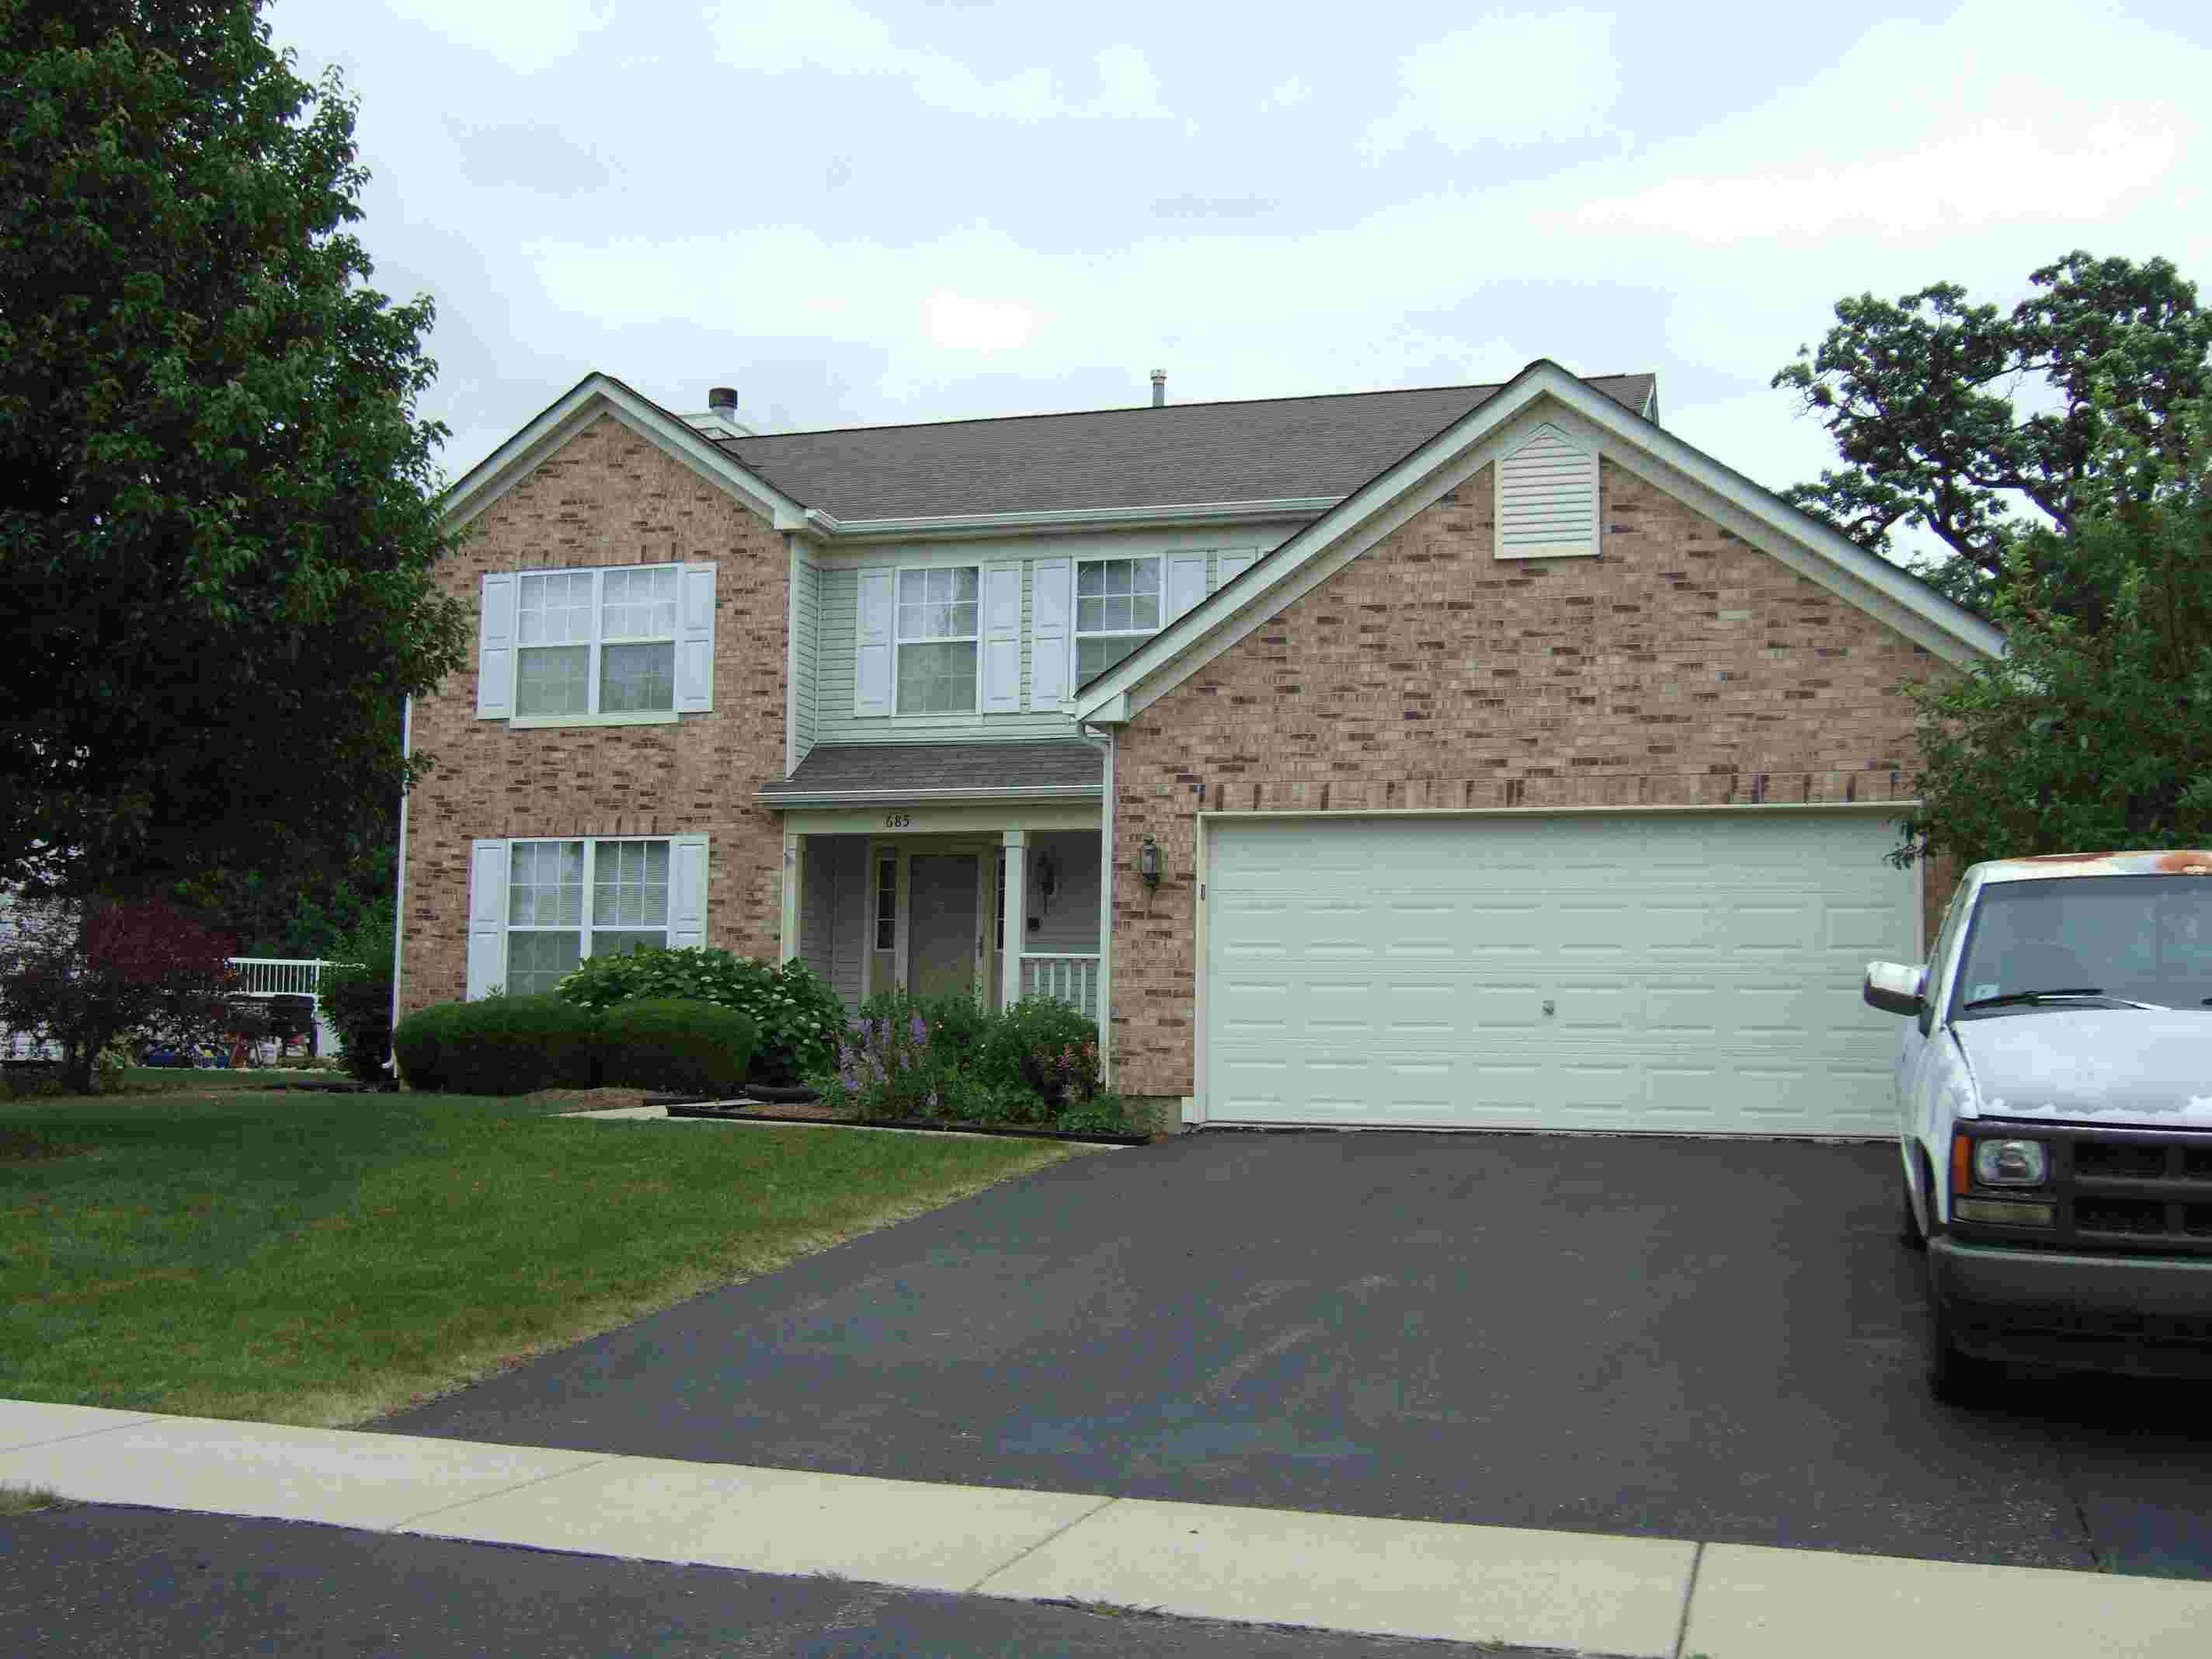 ForSaleByOwner (FSBO) home in Antioch, IL at ForSaleByOwnerBuyersGuide.com